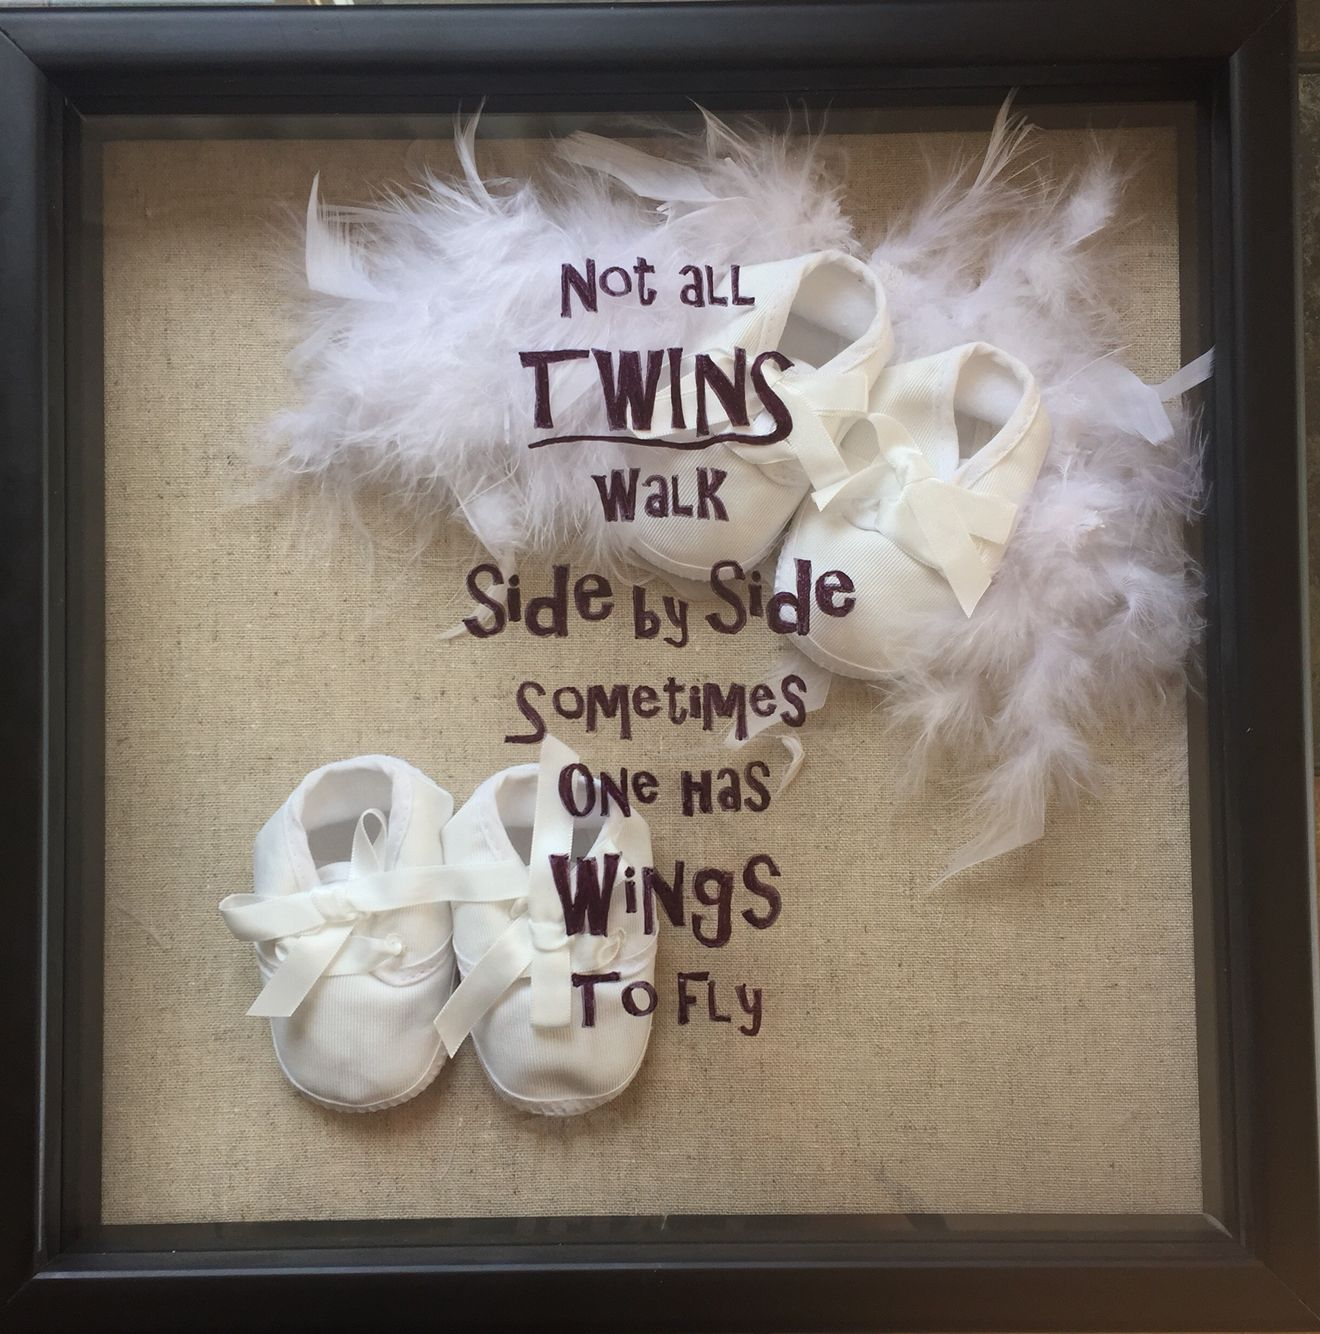 Just Had A Baby Gift Ideas : Loss of one twin miscarriage gift